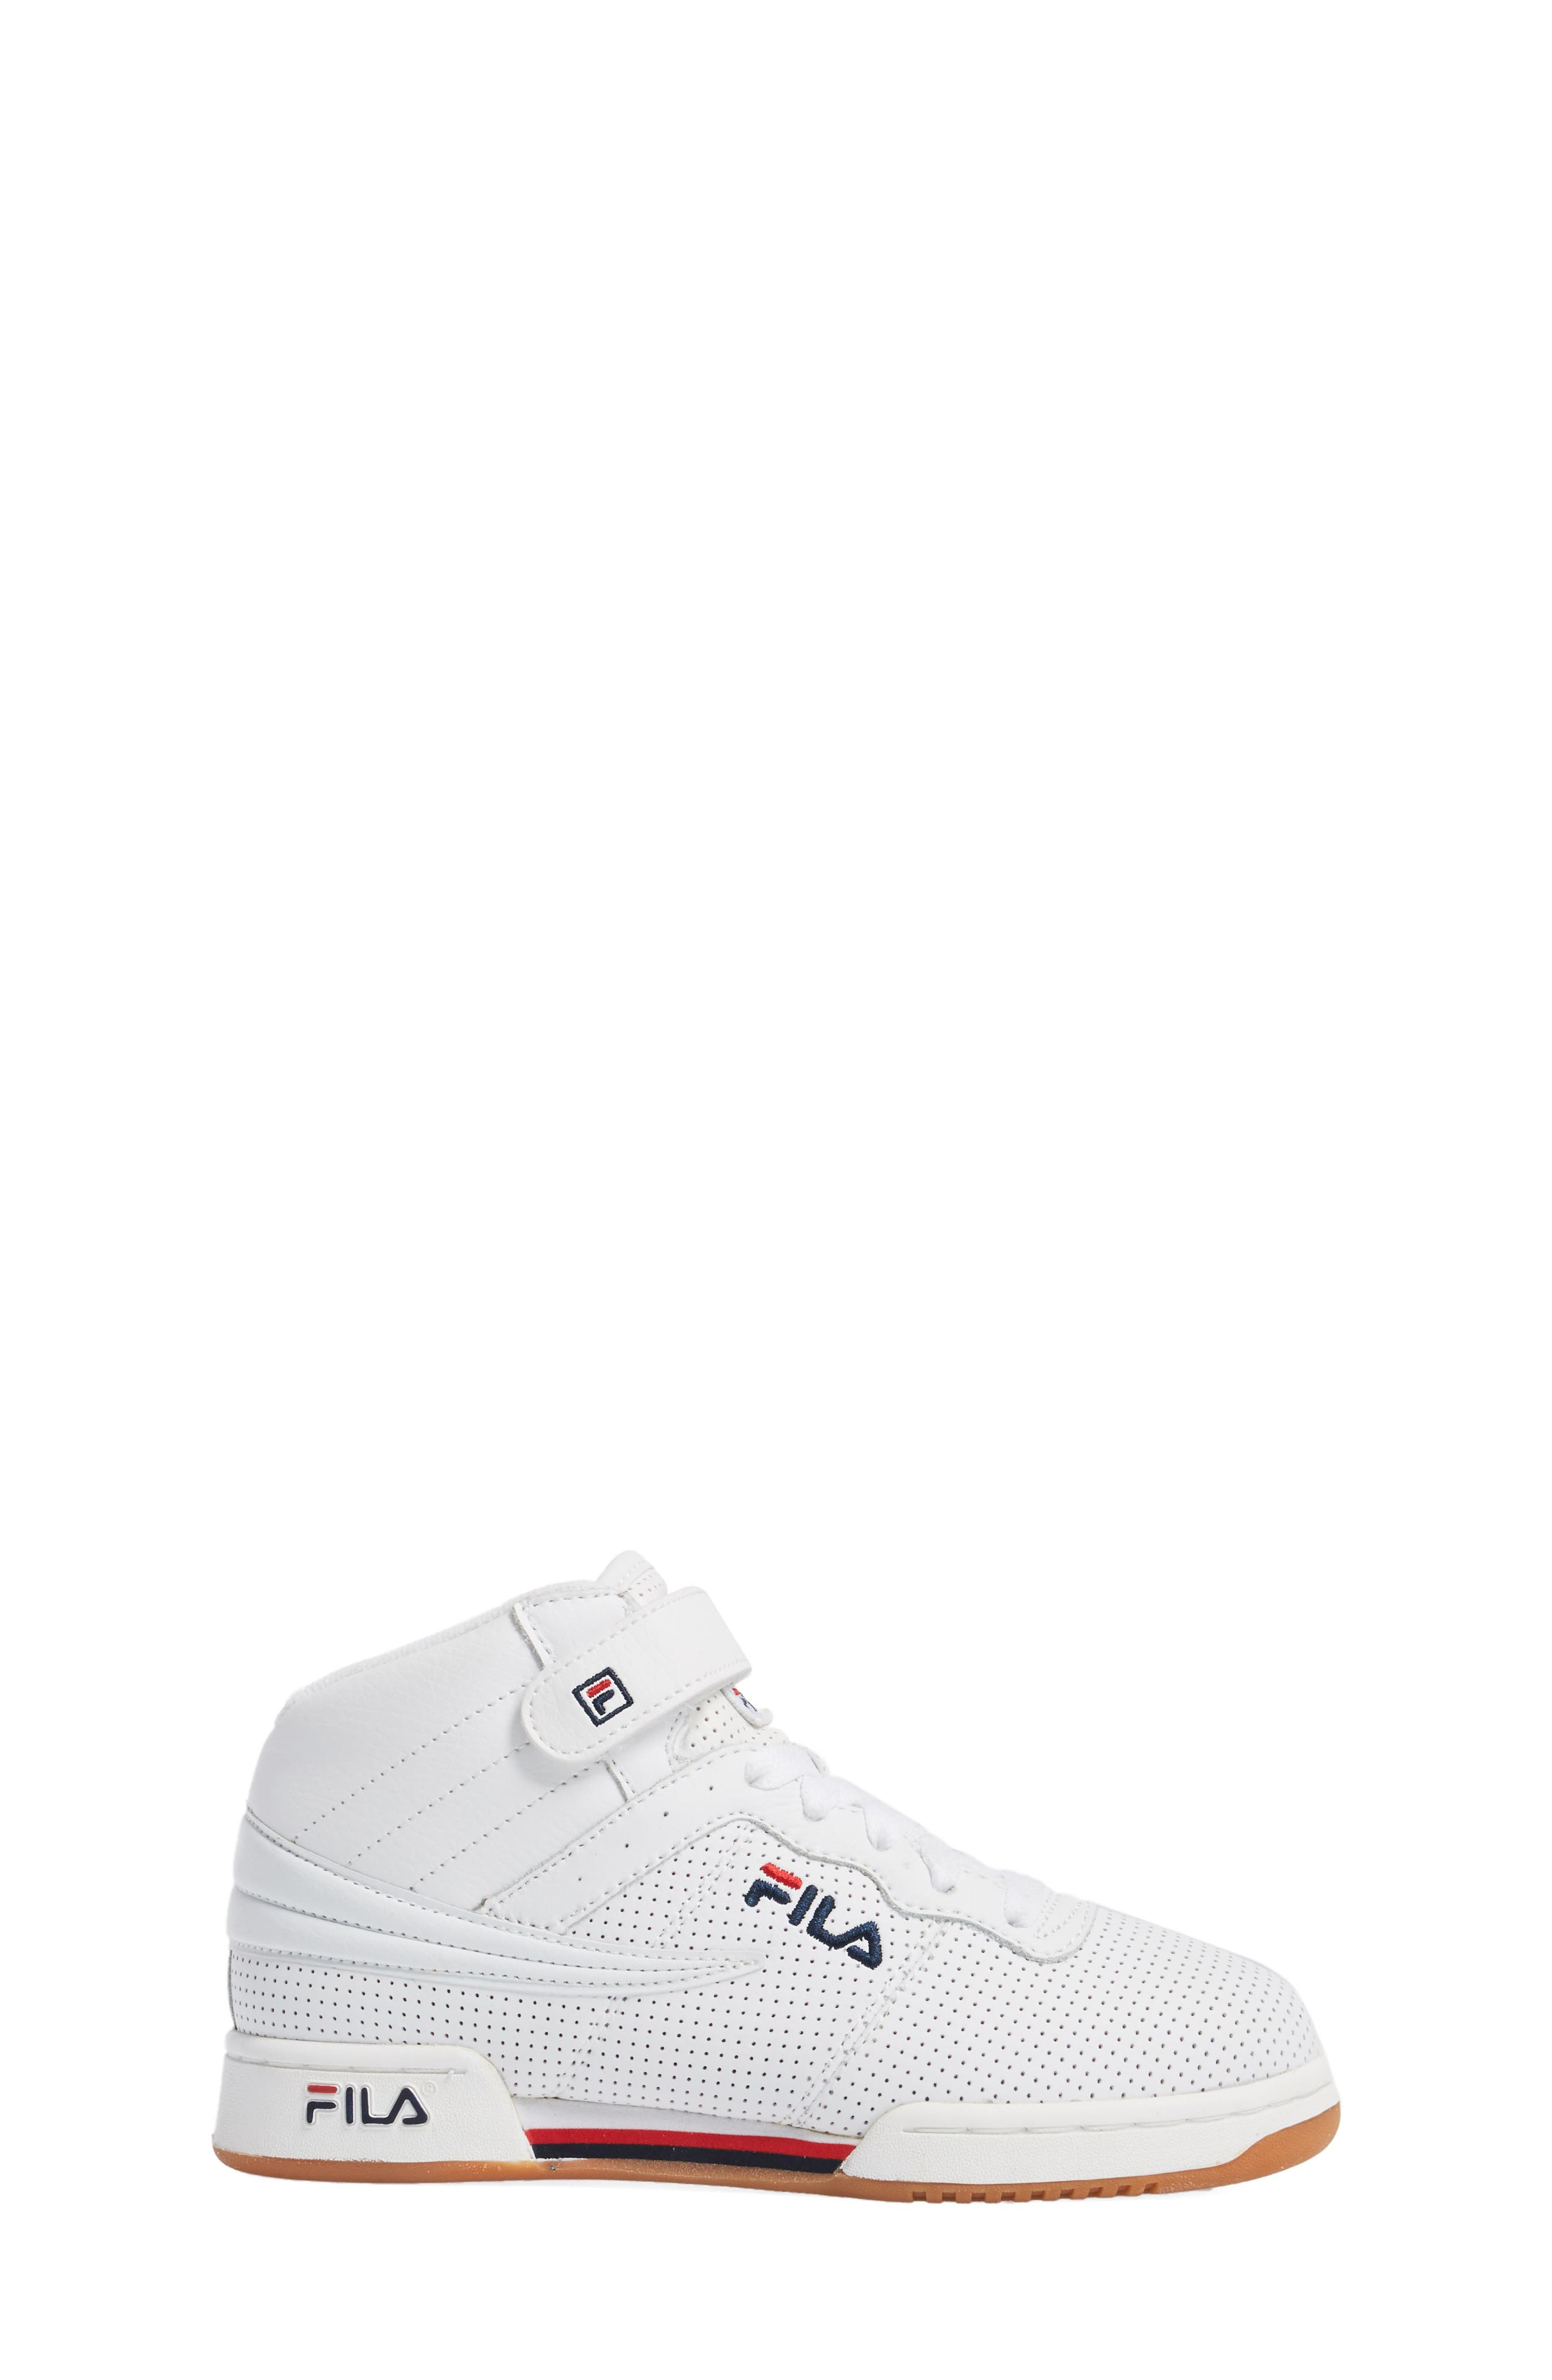 F-13 Perforated High Top Sneaker,                             Alternate thumbnail 3, color,                             WHITE/NAVY/RED